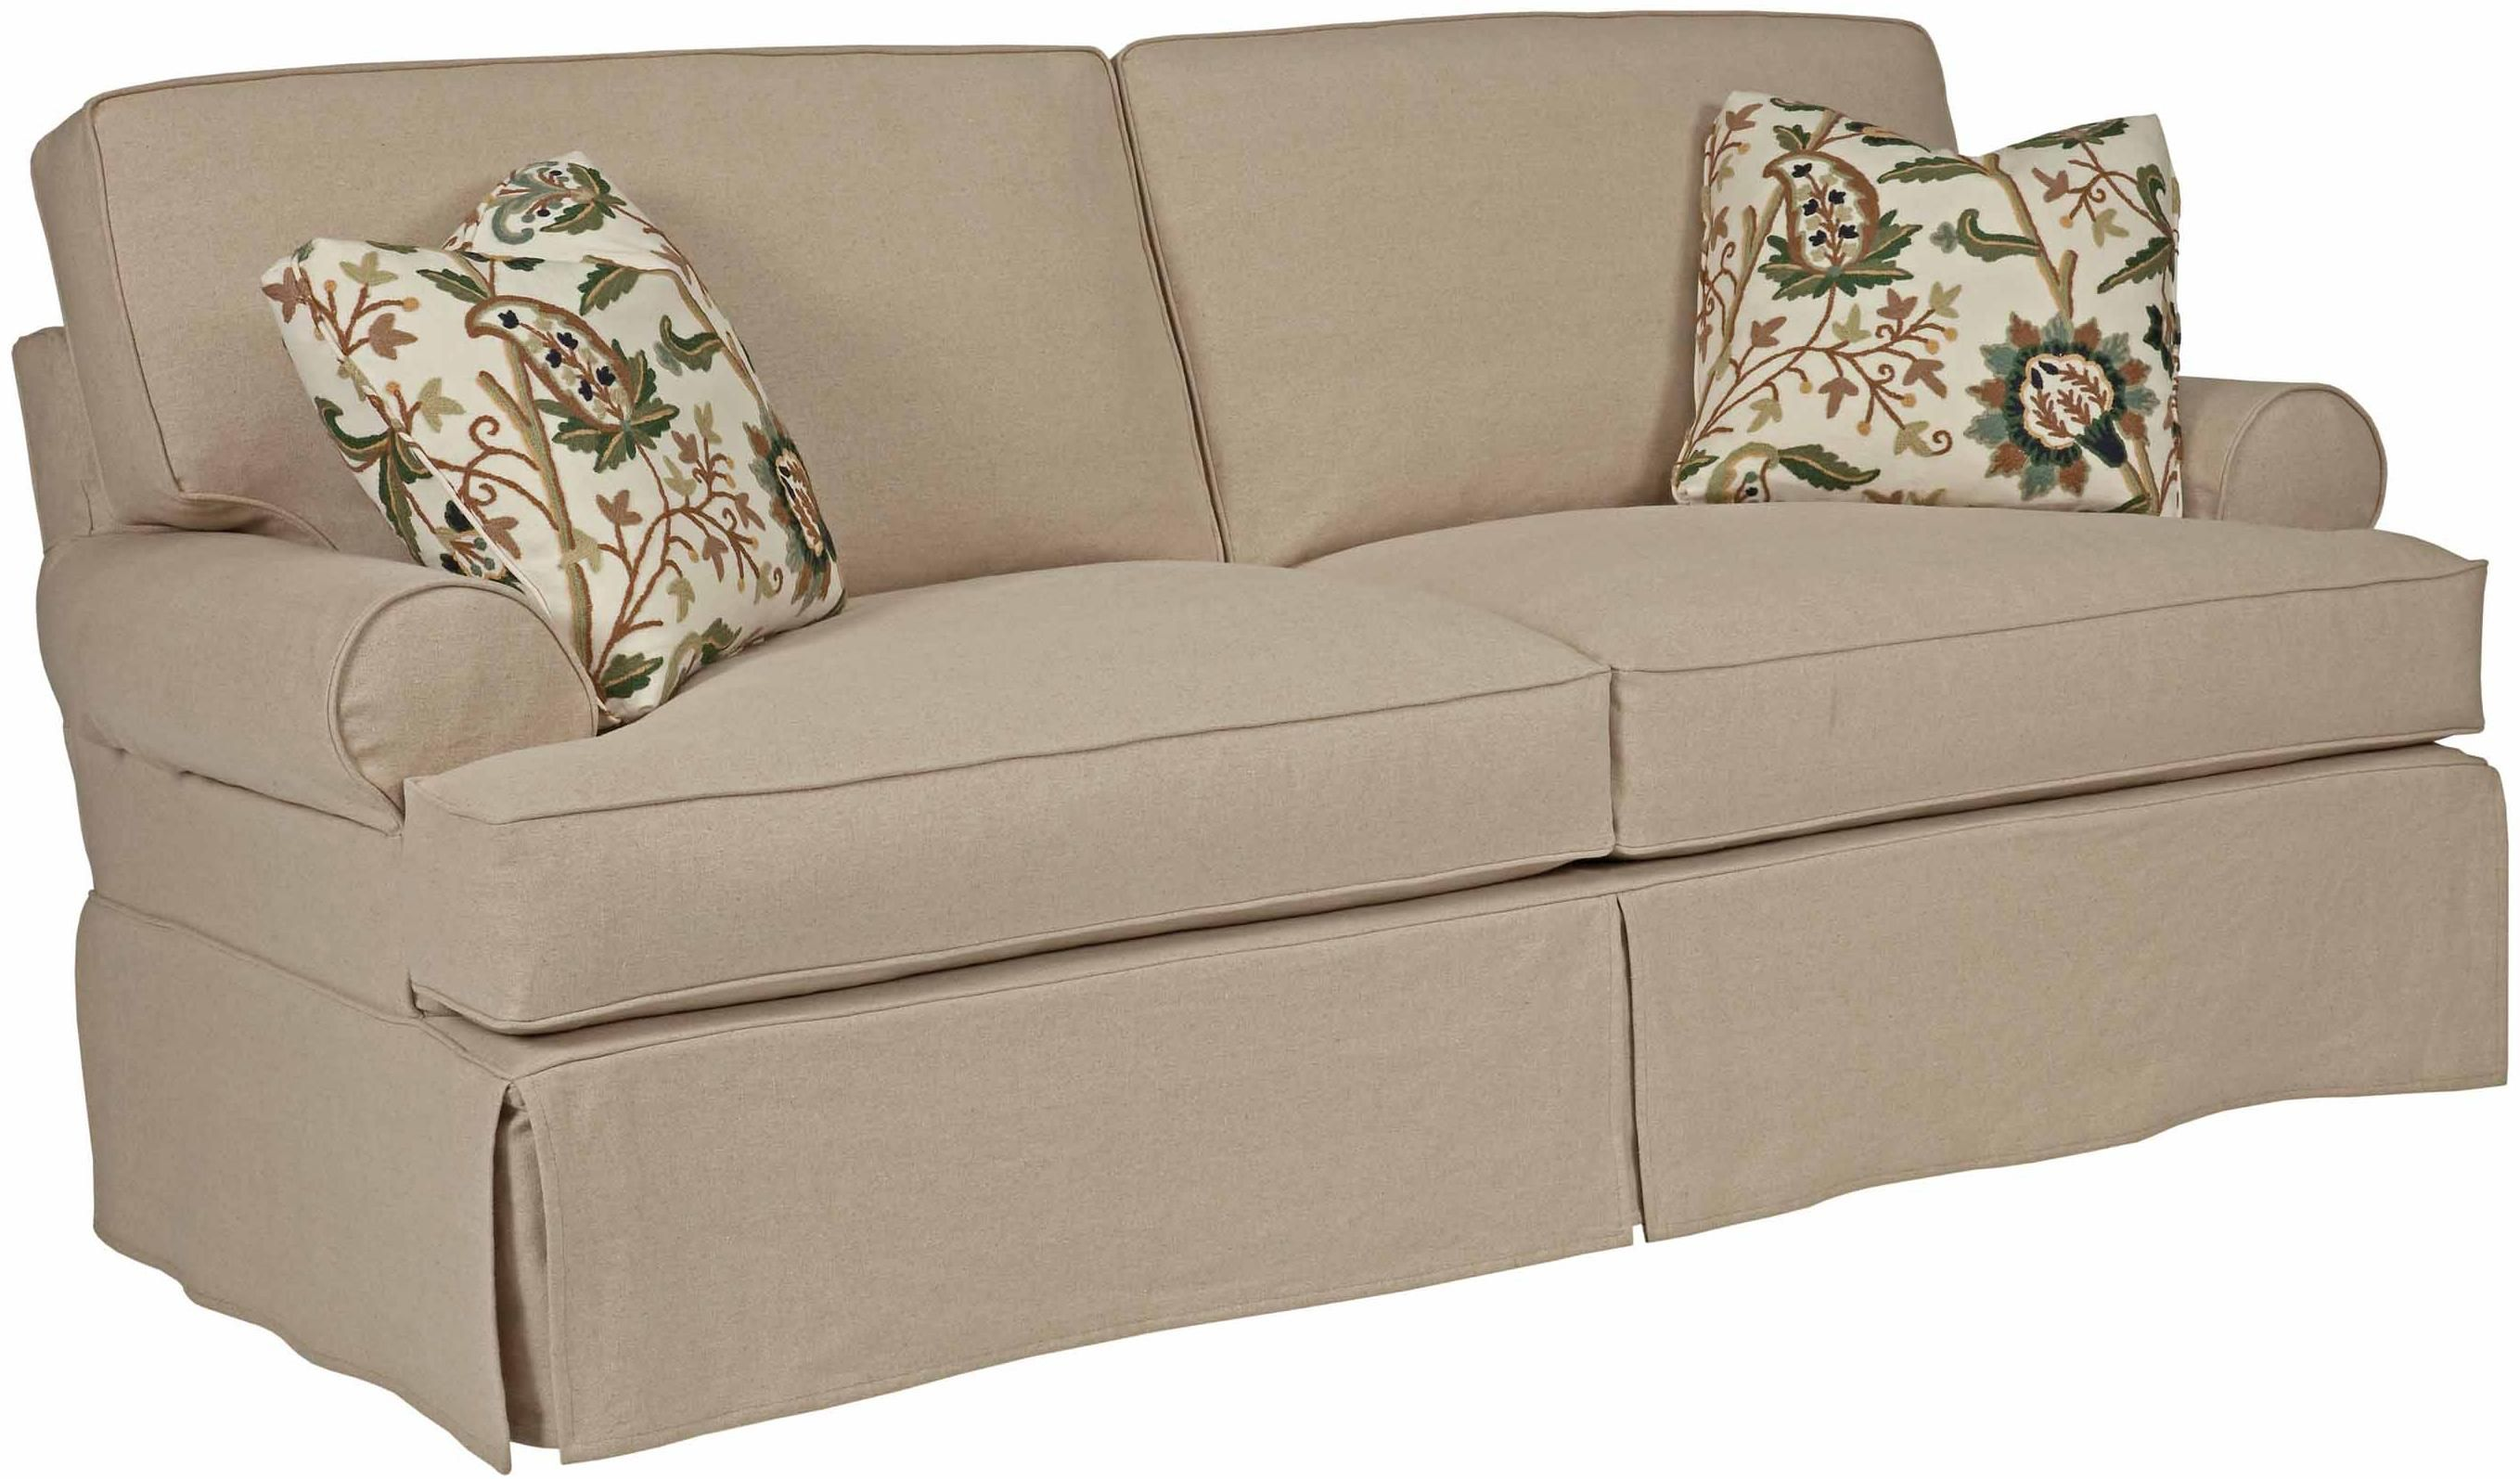 Samantha Samantha Two Seat Sofa With Slipcover Tailoring Loose Pillow Back By Kincaid Furniture At Hudso Cushions On Sofa White Slipcover Sofa Couch Cushions